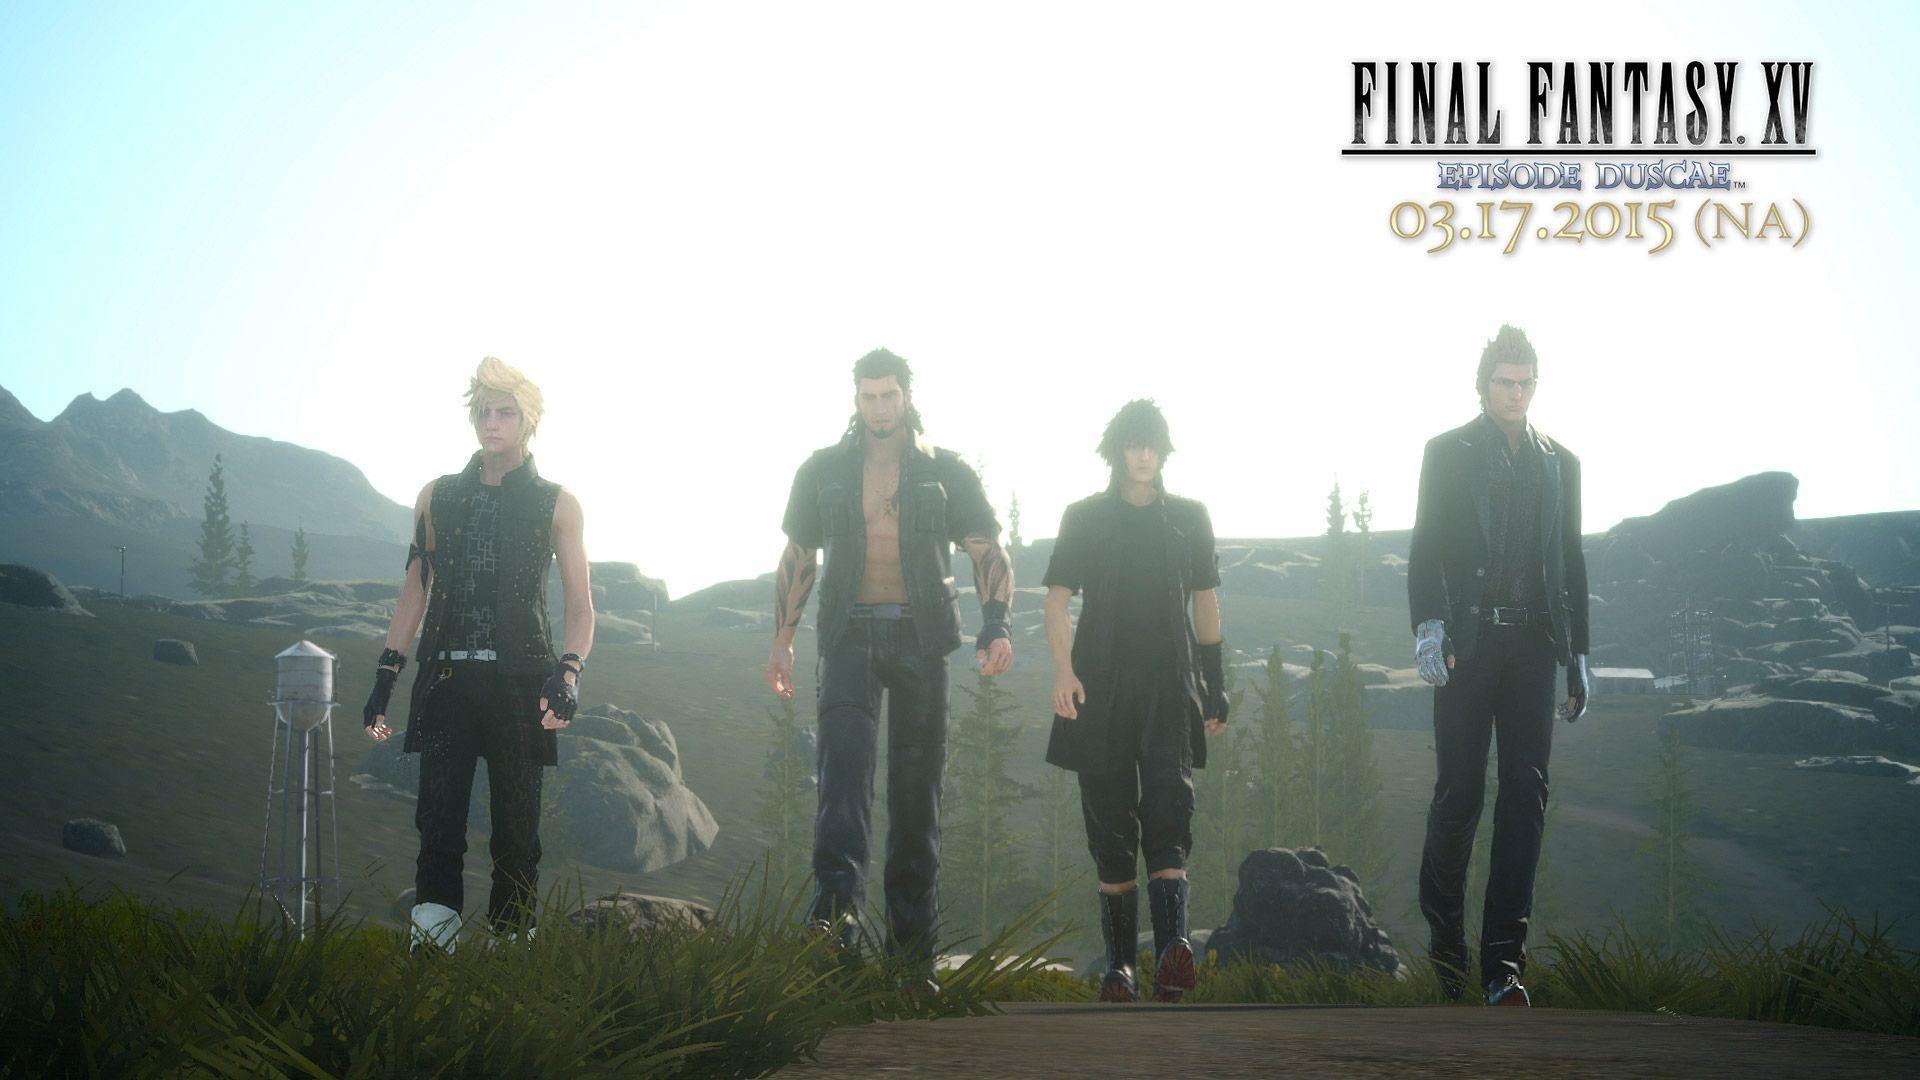 Free Final Fantasy XV Wallpapers in 1920x1080